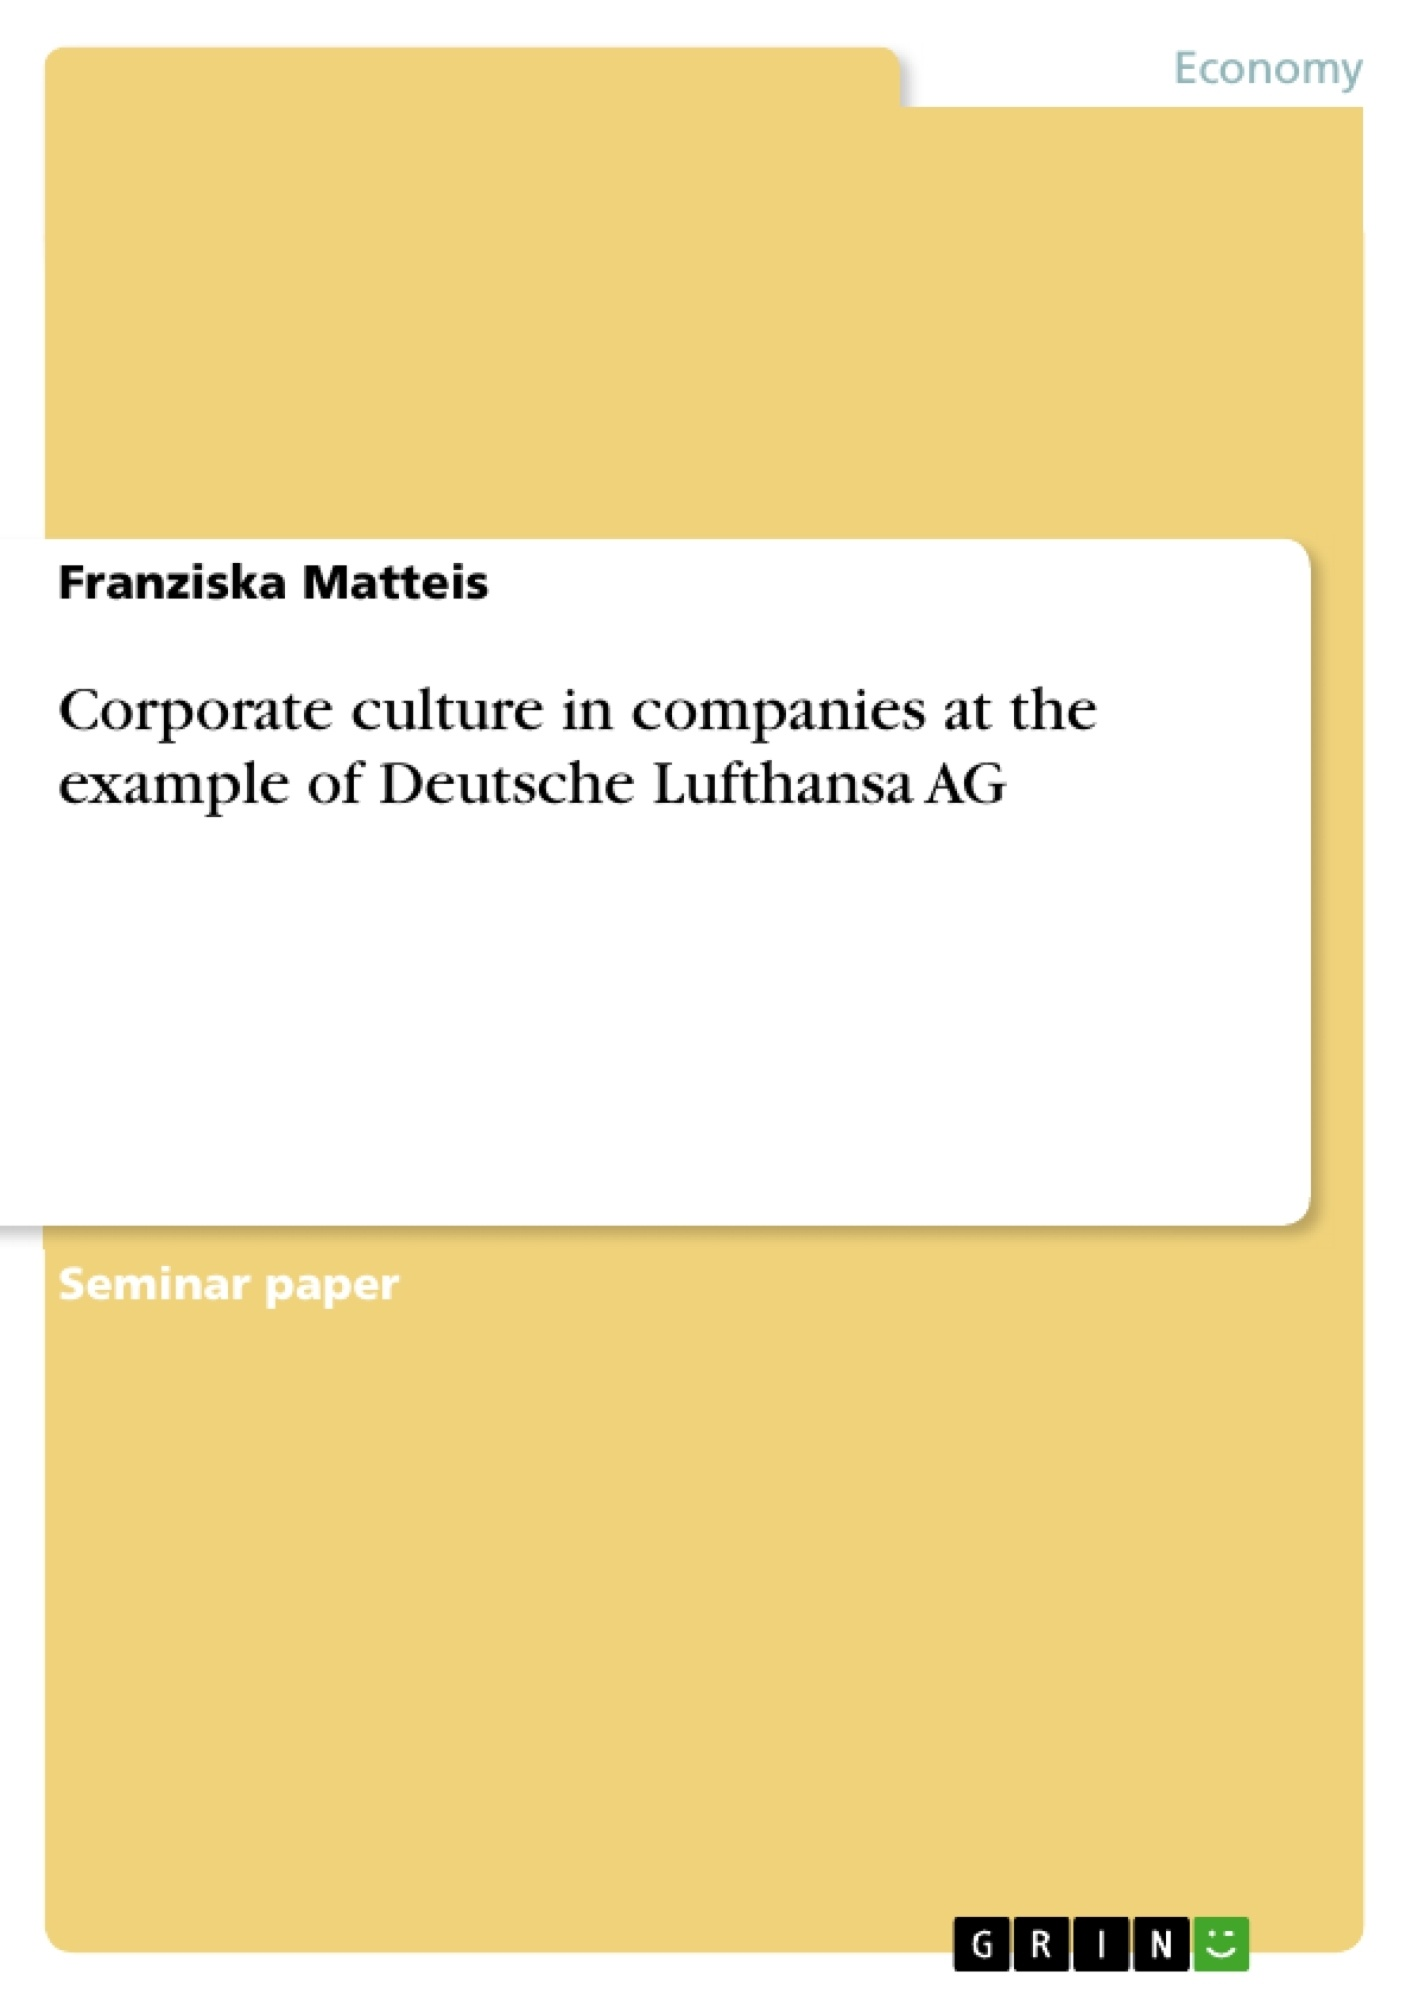 Title: Corporate culture in companies at the example of Deutsche Lufthansa AG